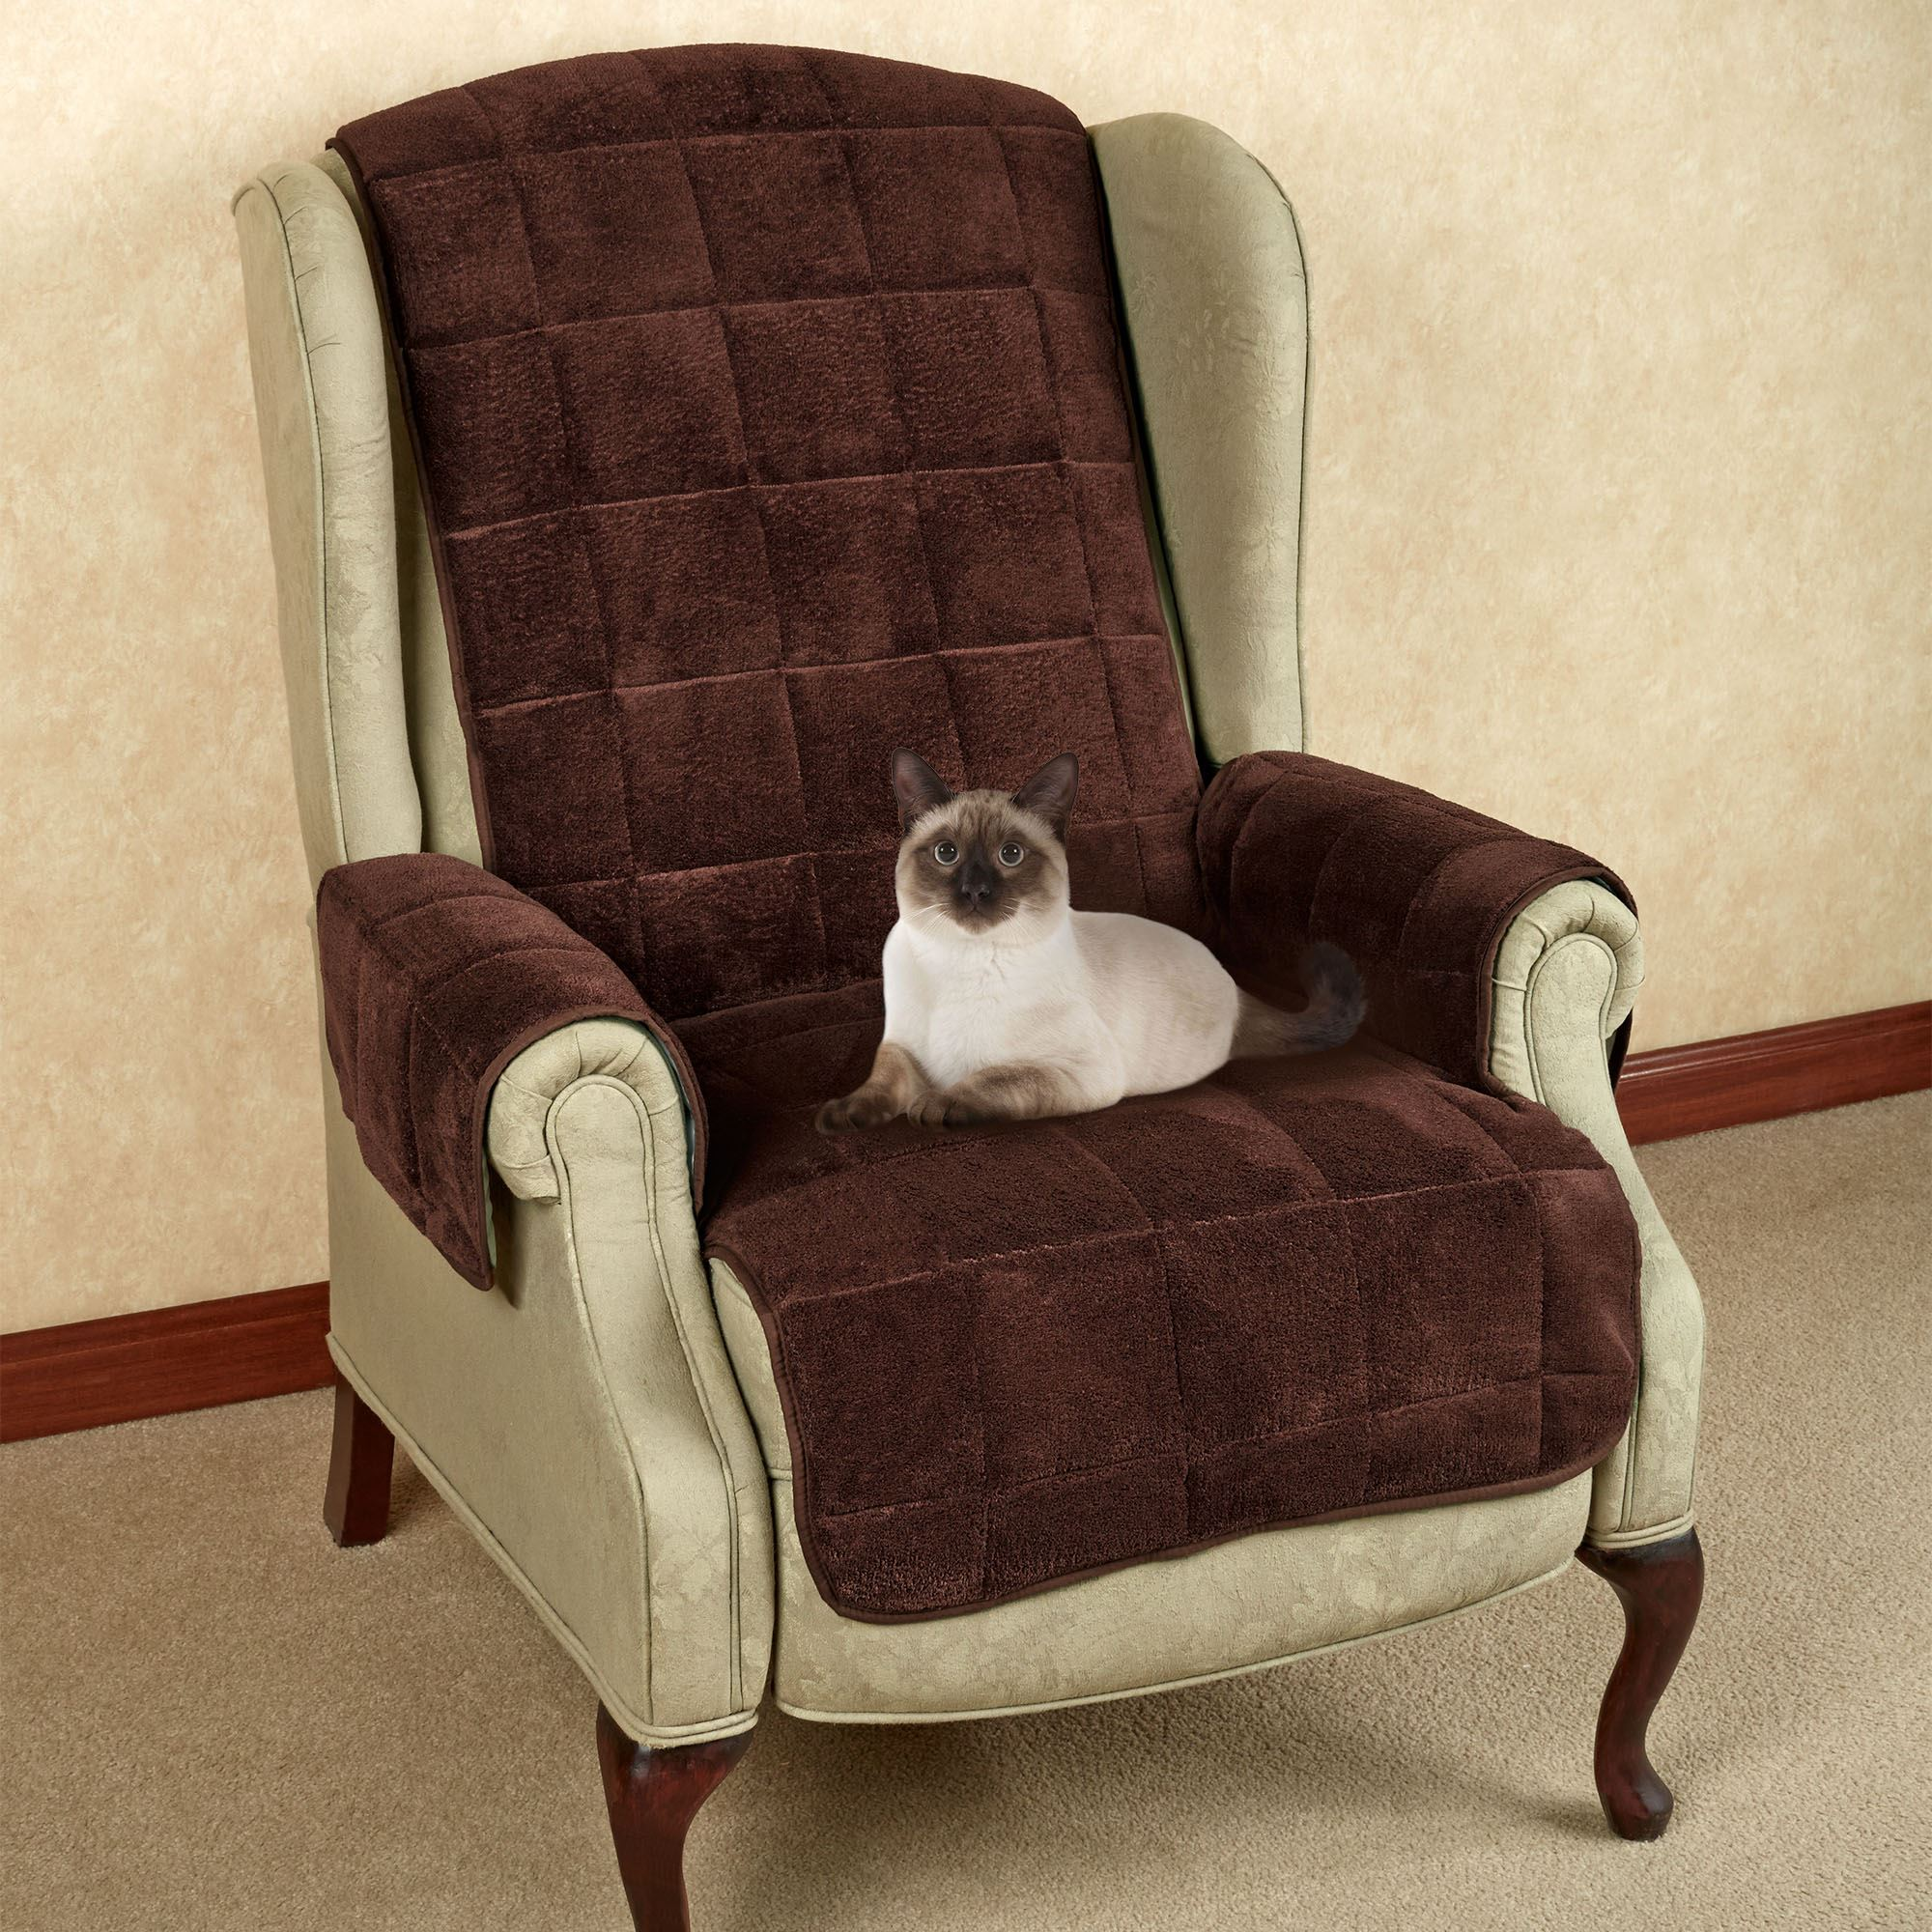 Charmant Microplush Pet Furniture Recliner/Wing Chair Cover